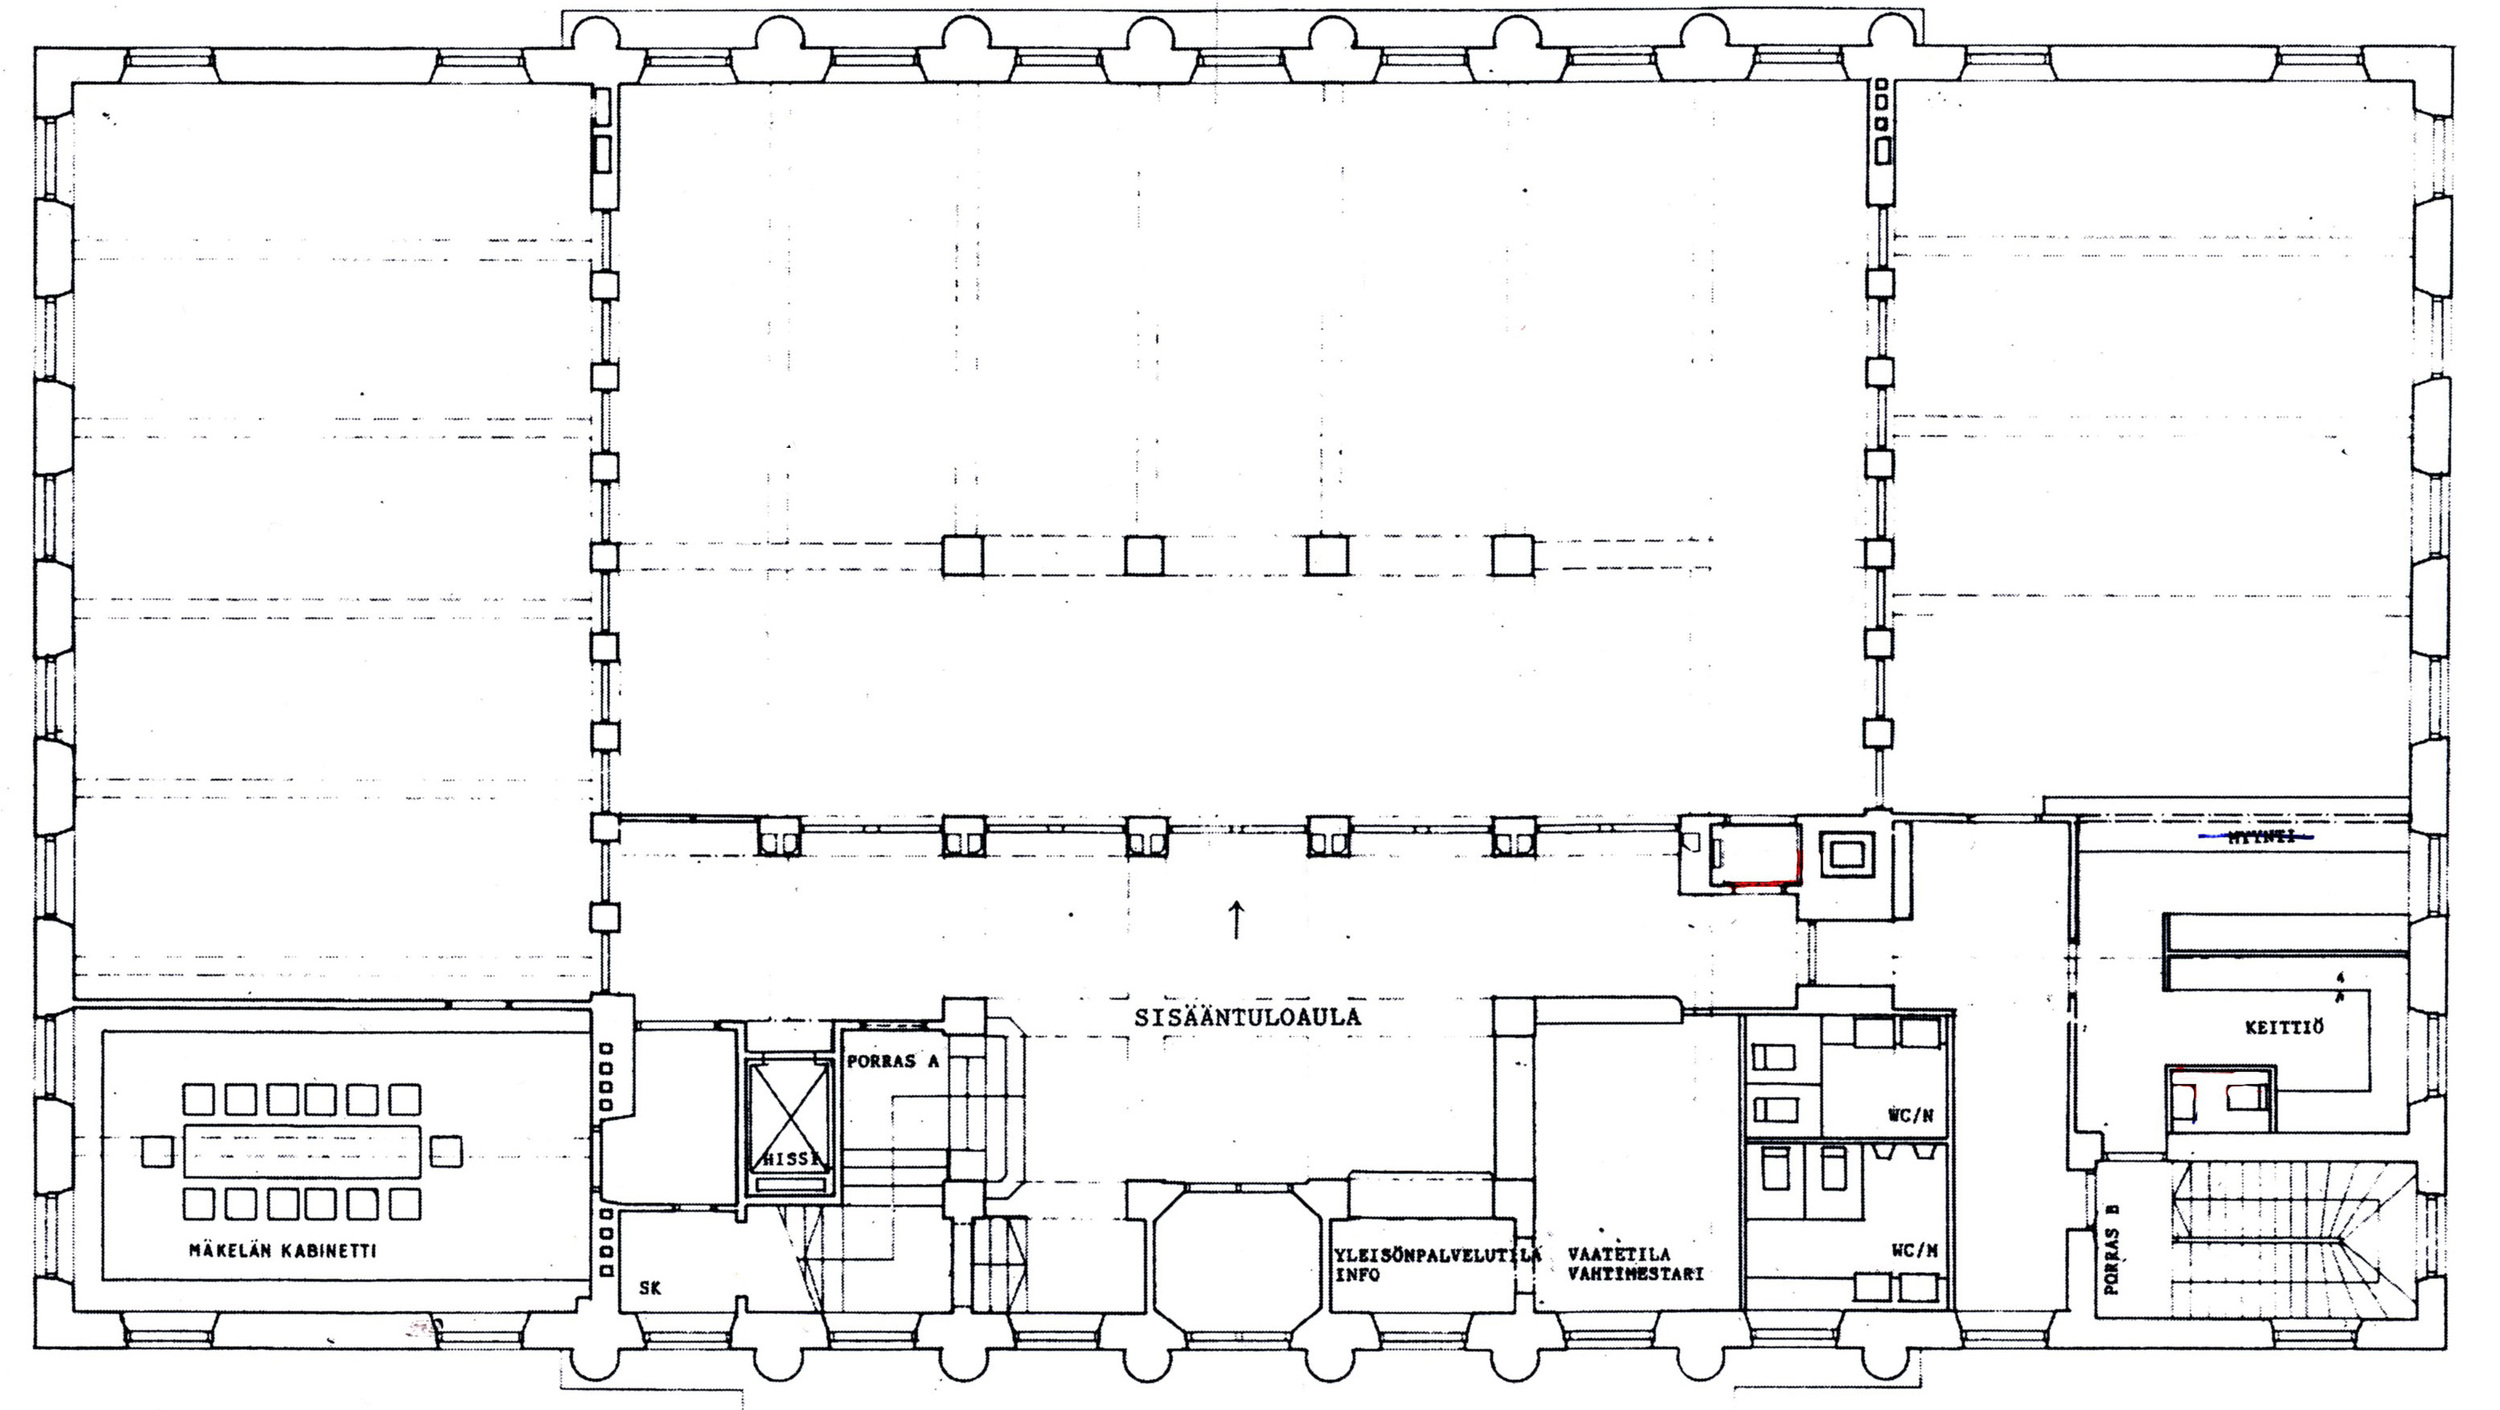 The actual, executed plan shows a more grid based layout for the library.